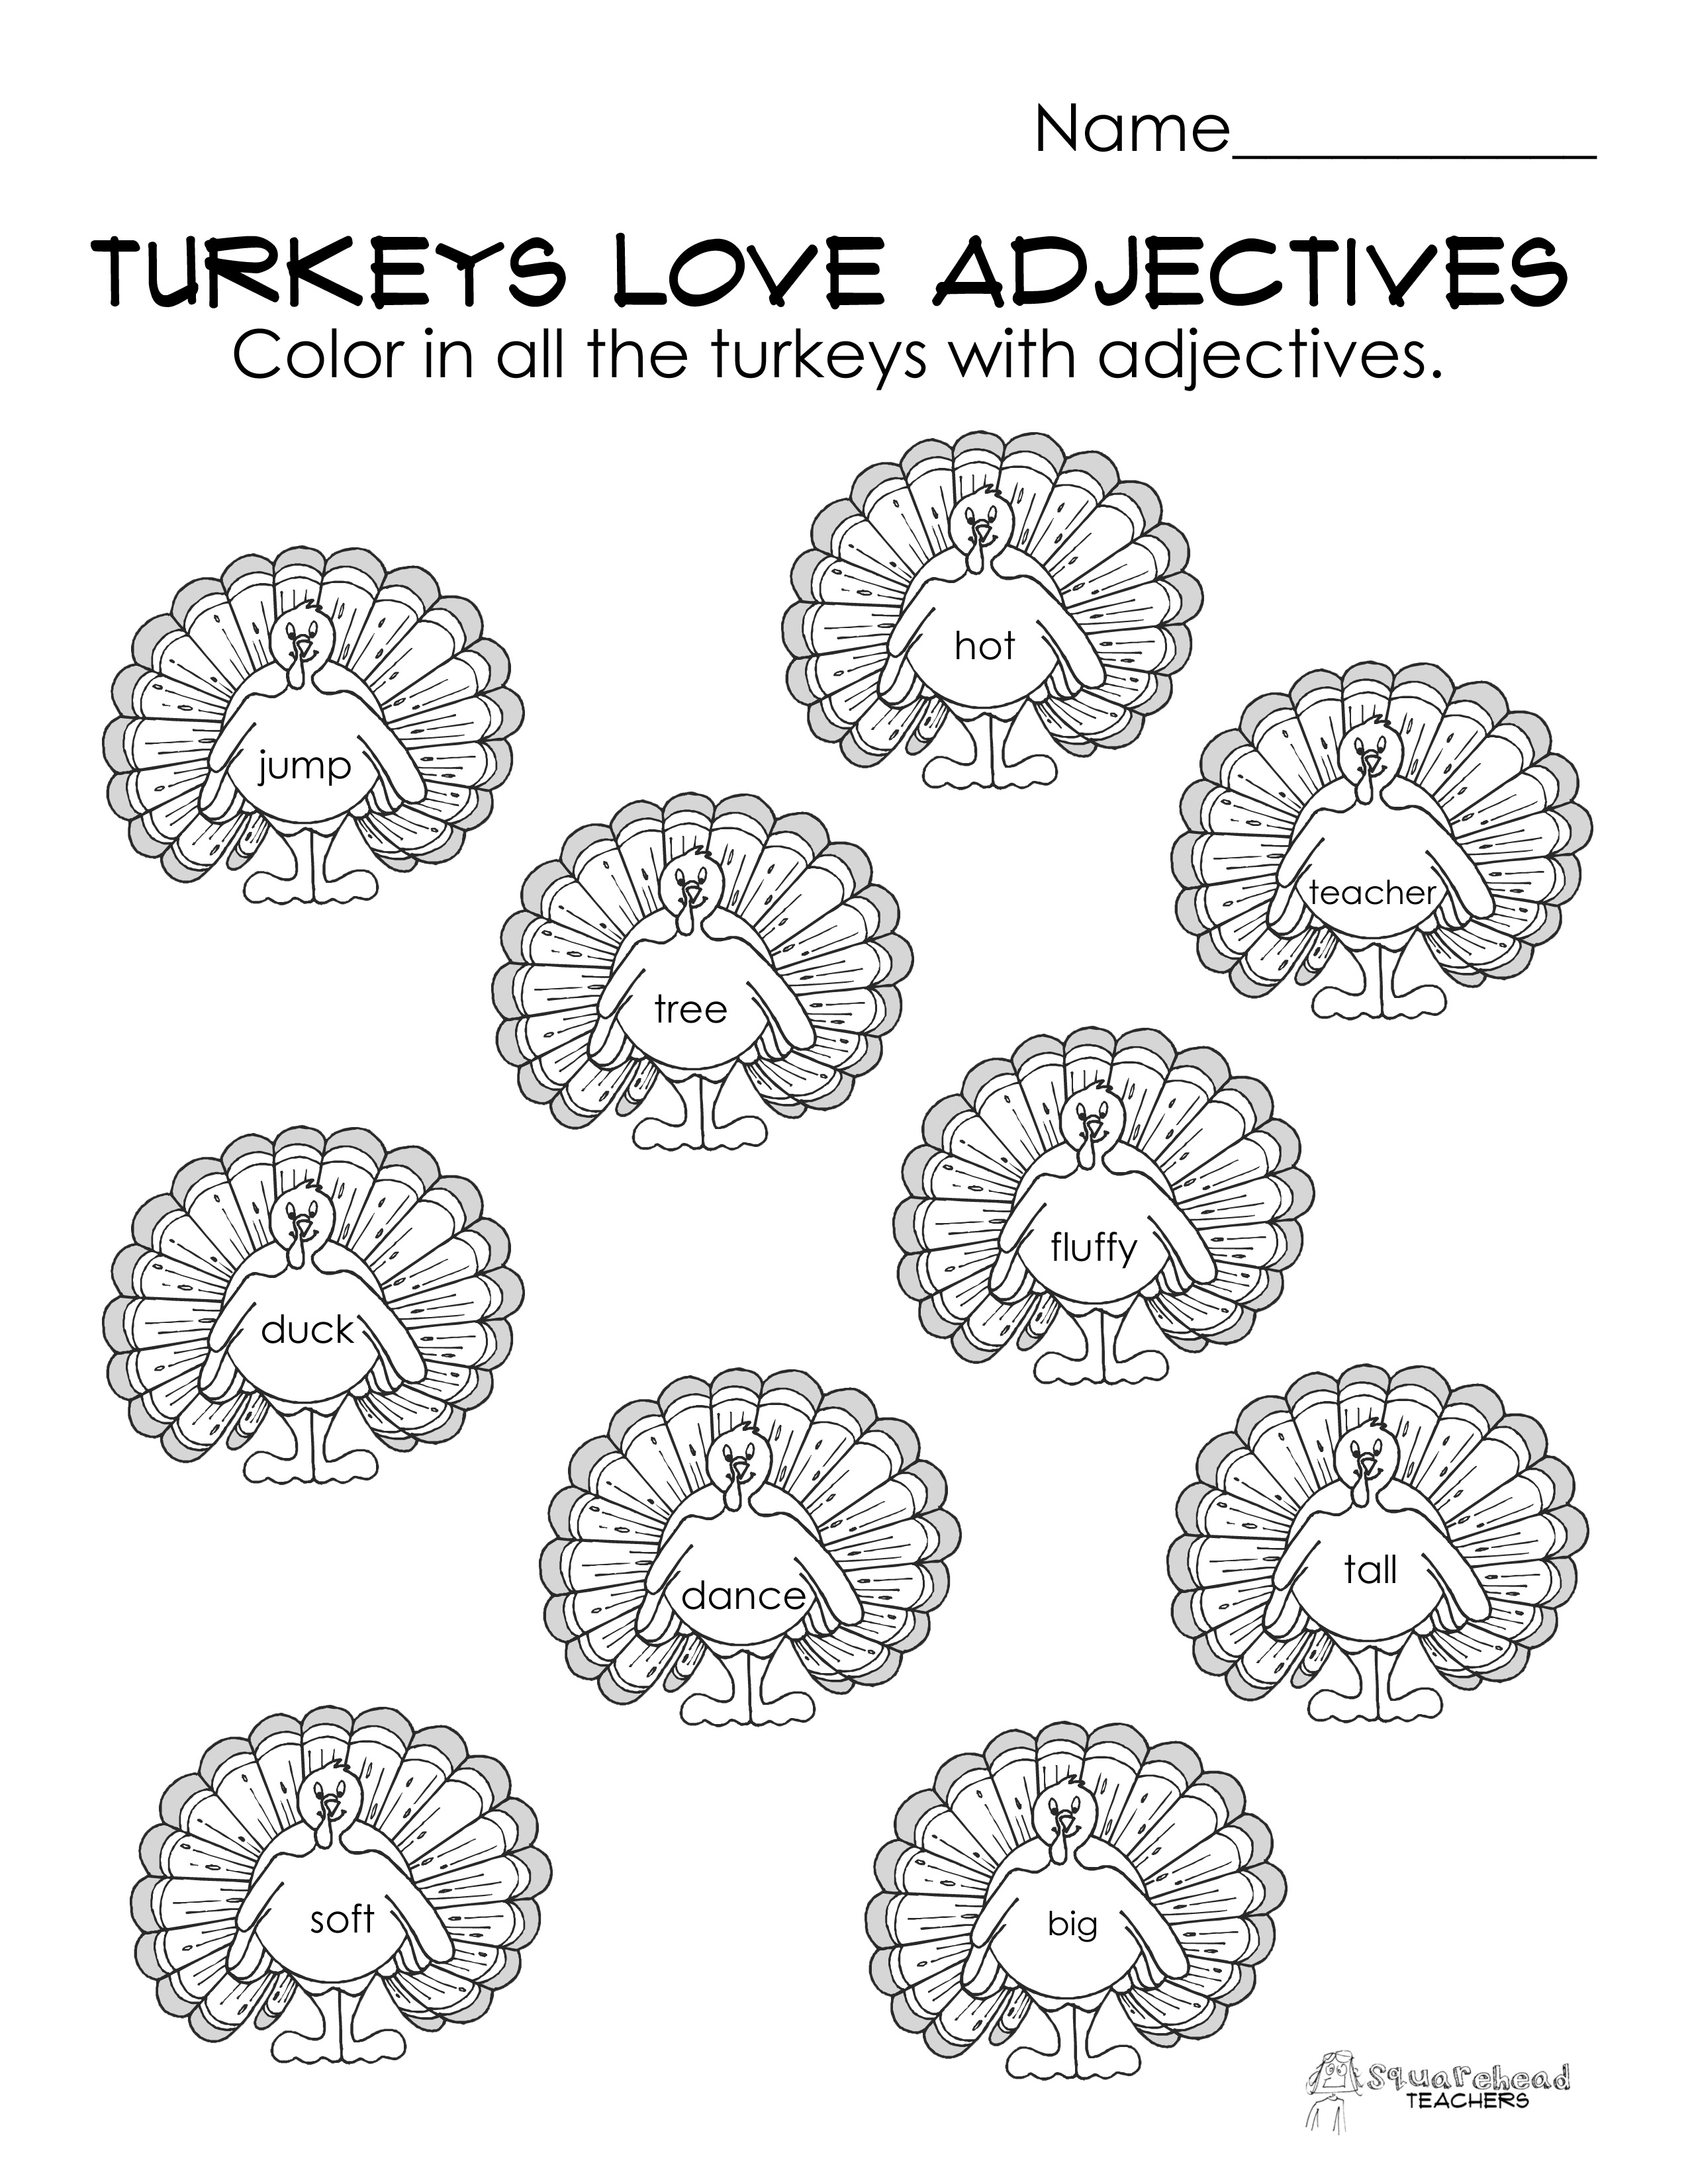 Worksheet Adjective Worksheet For Kids adjectives homework ks1 parts of speech grade pdf thanksgiving math worksheet squarehead teachers grade